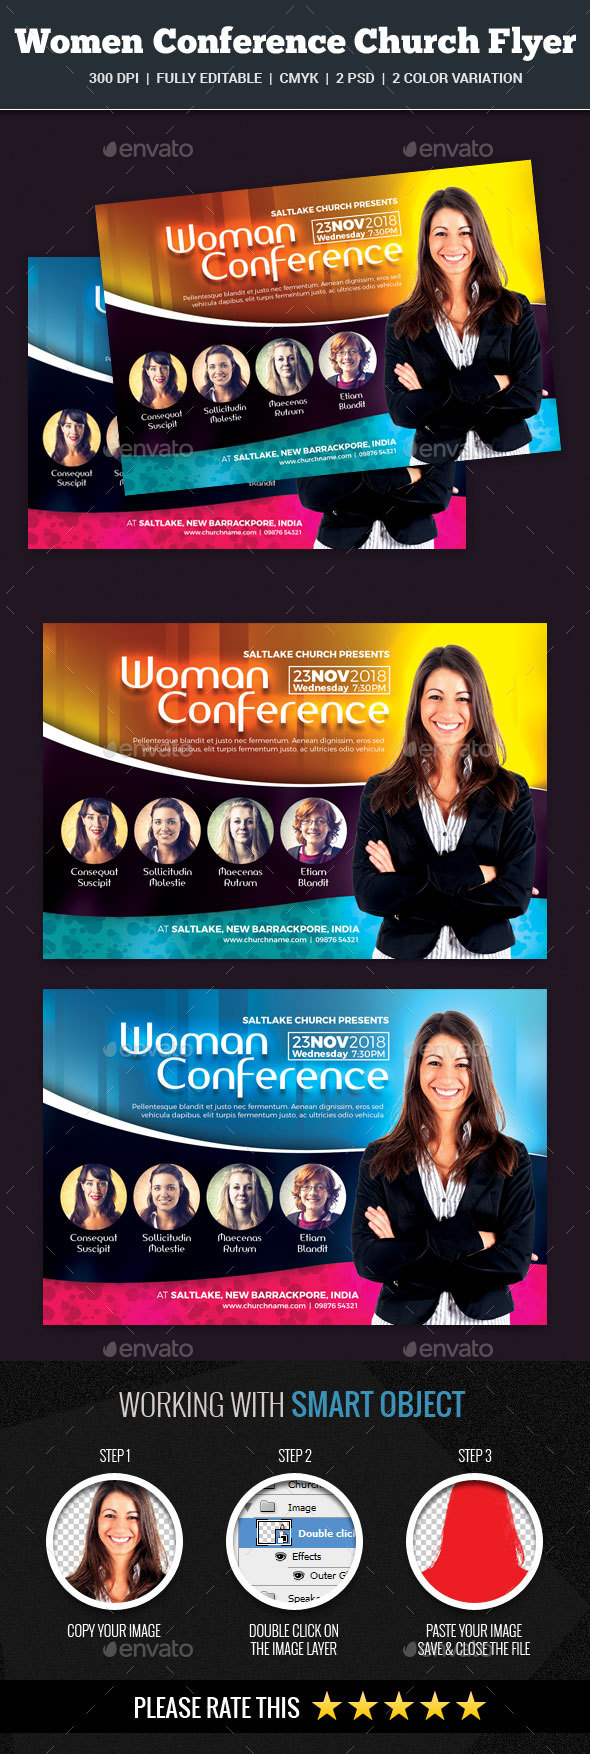 Woman Conference Church Flyer - Church Flyers